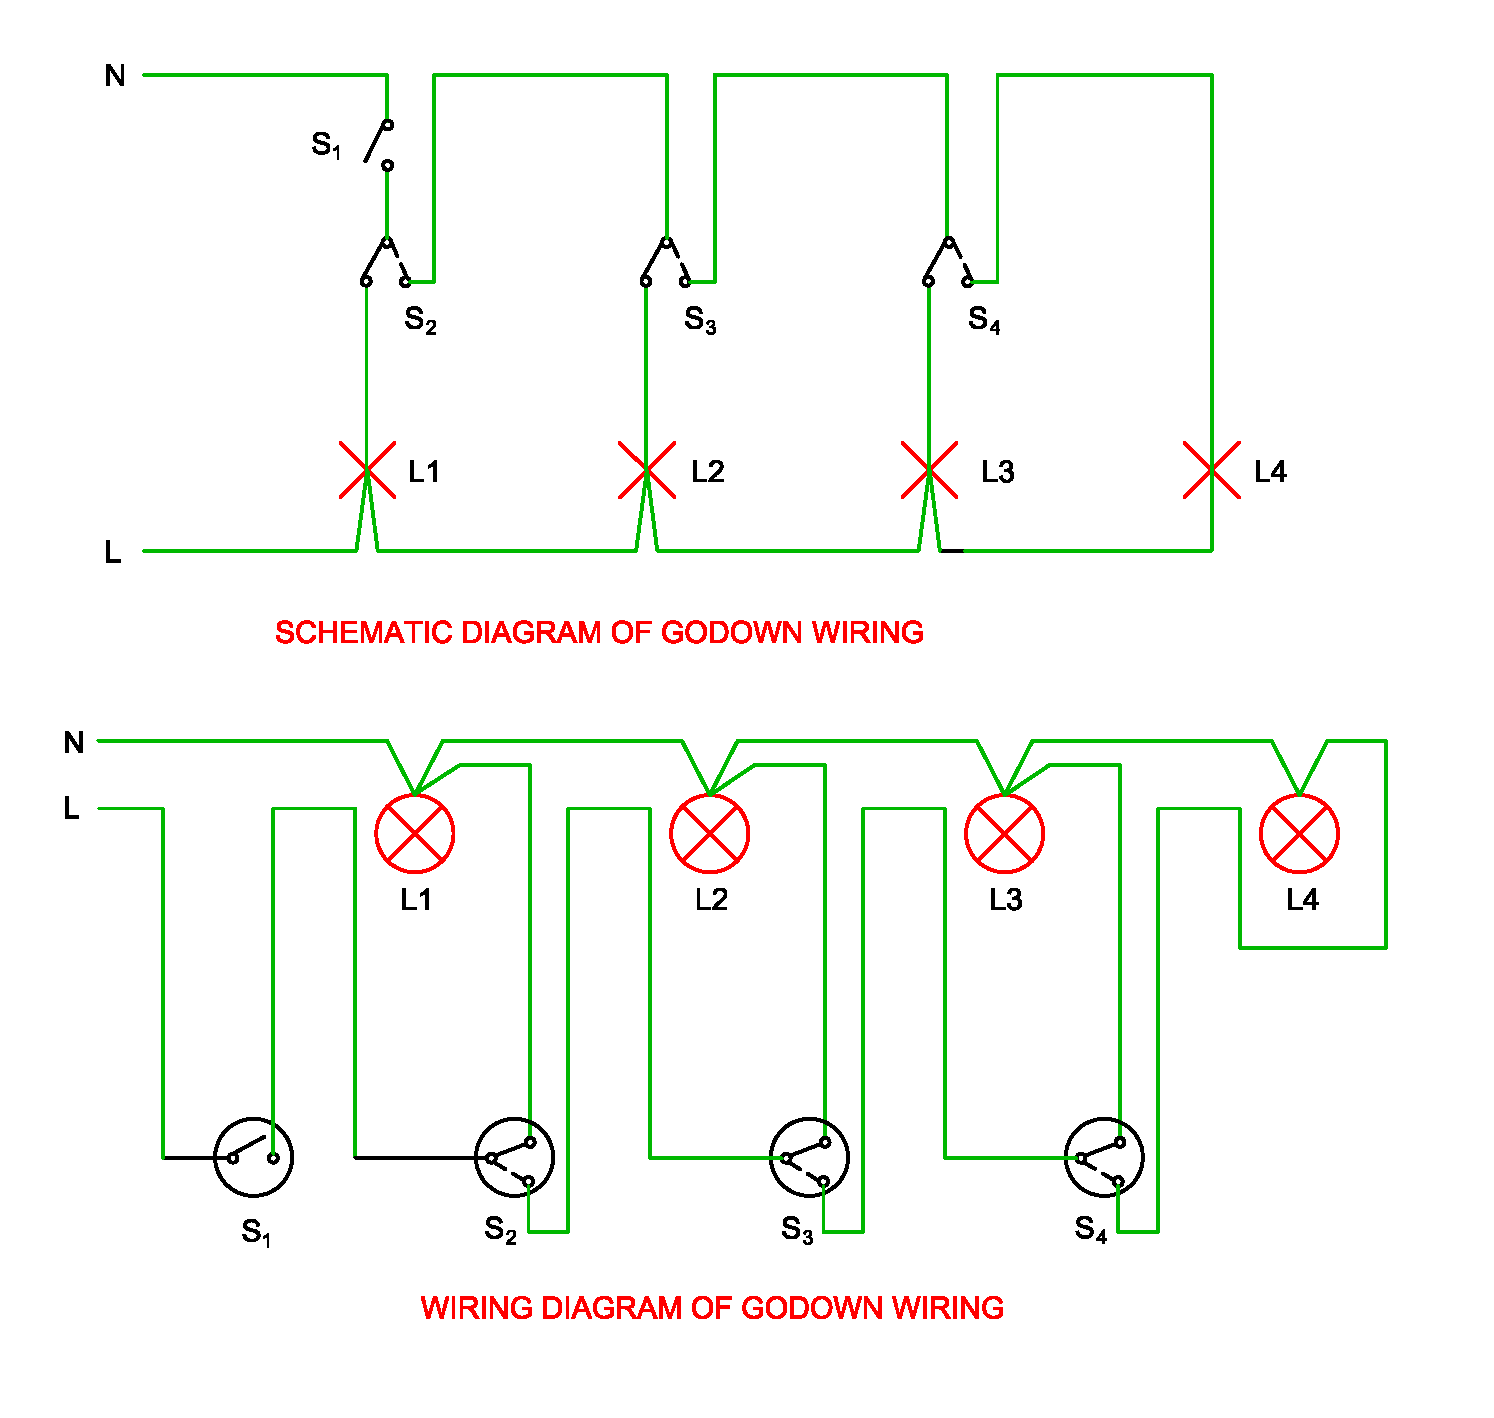 GODOWN%2BWIRING godown wiring diagram download basic electrical wiring diagrams  at fashall.co